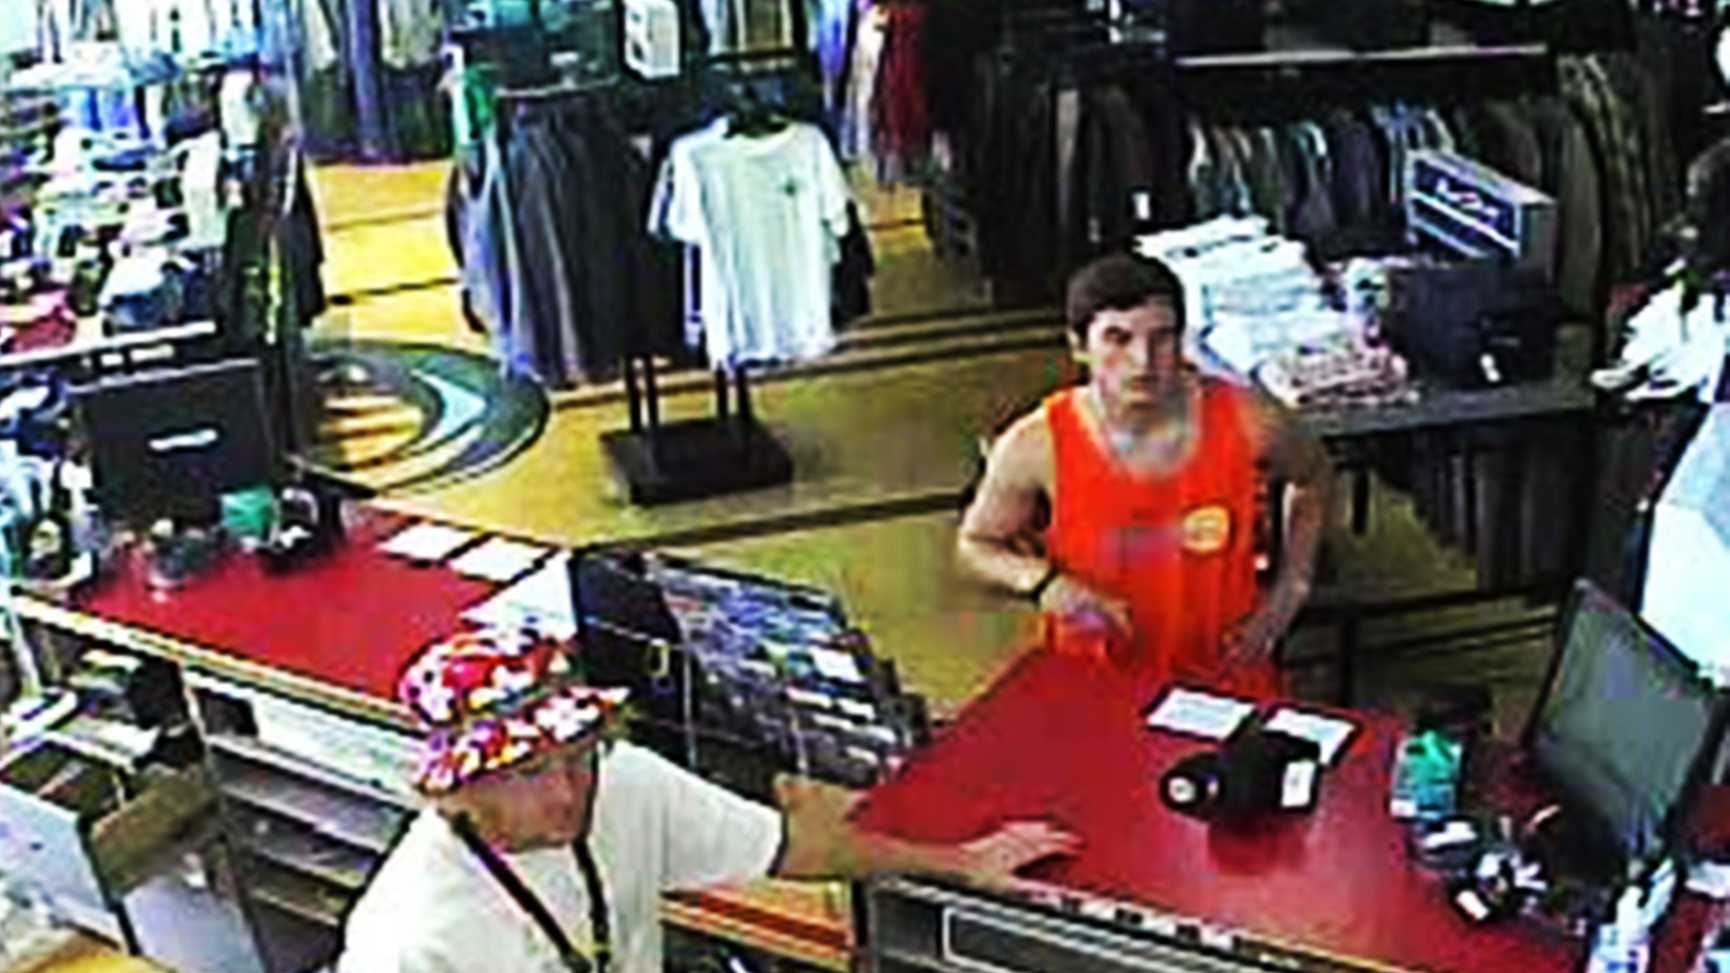 Santa Cruz police are asking the public for help to identify this man who stole from O'Neill surf shop on Pacific Avenue.